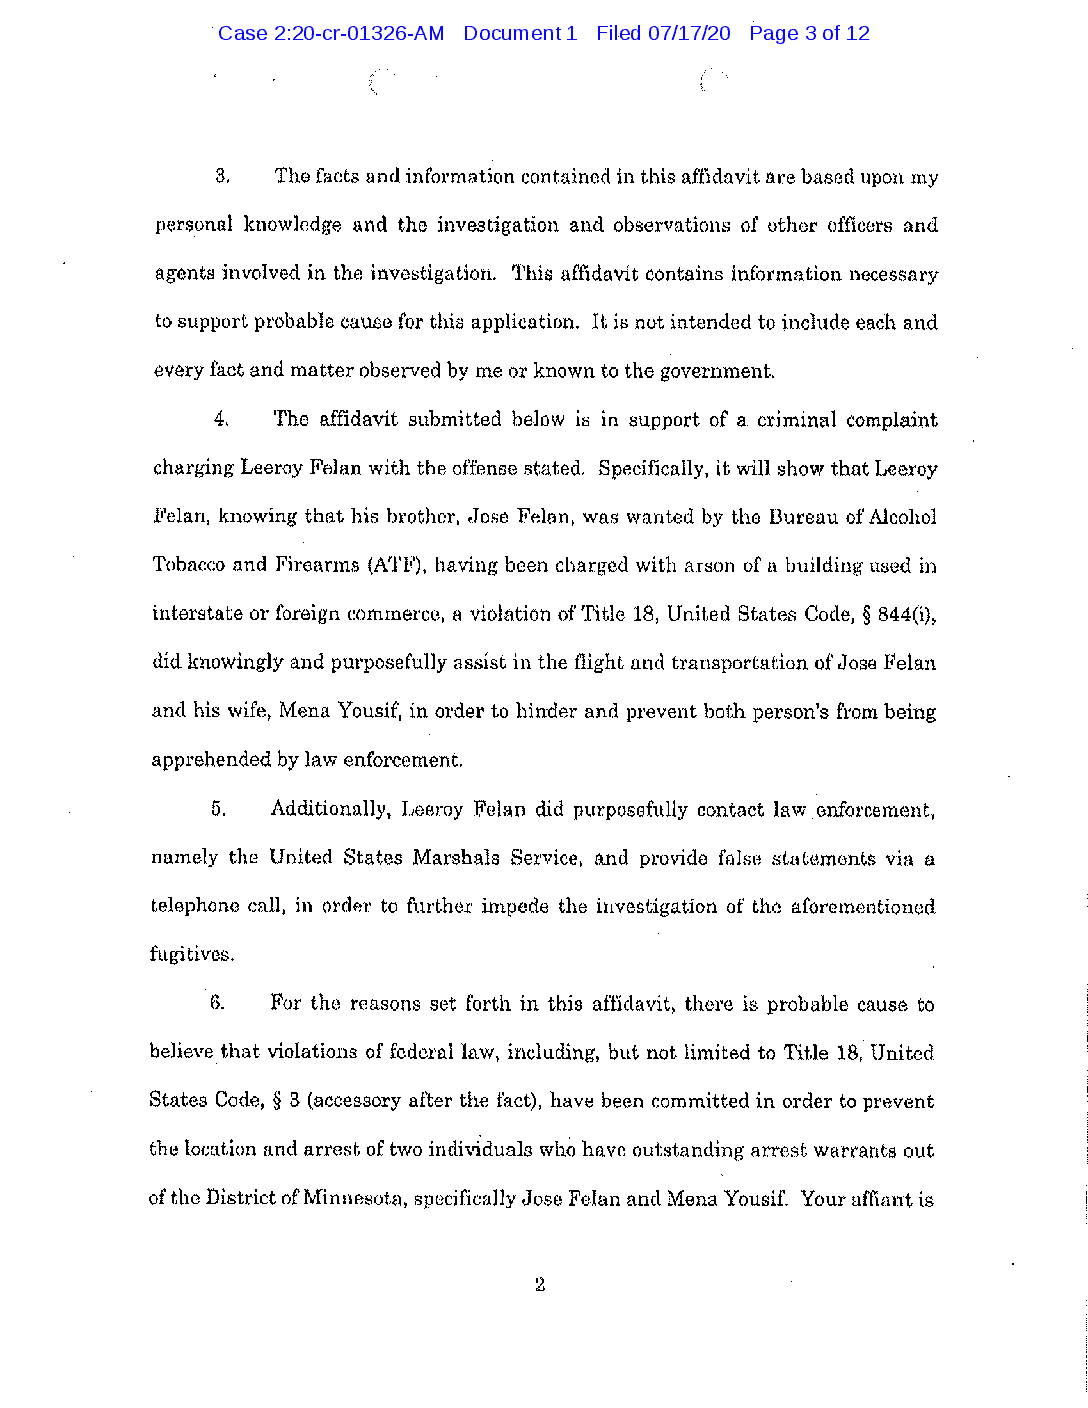 Page 3 of 12